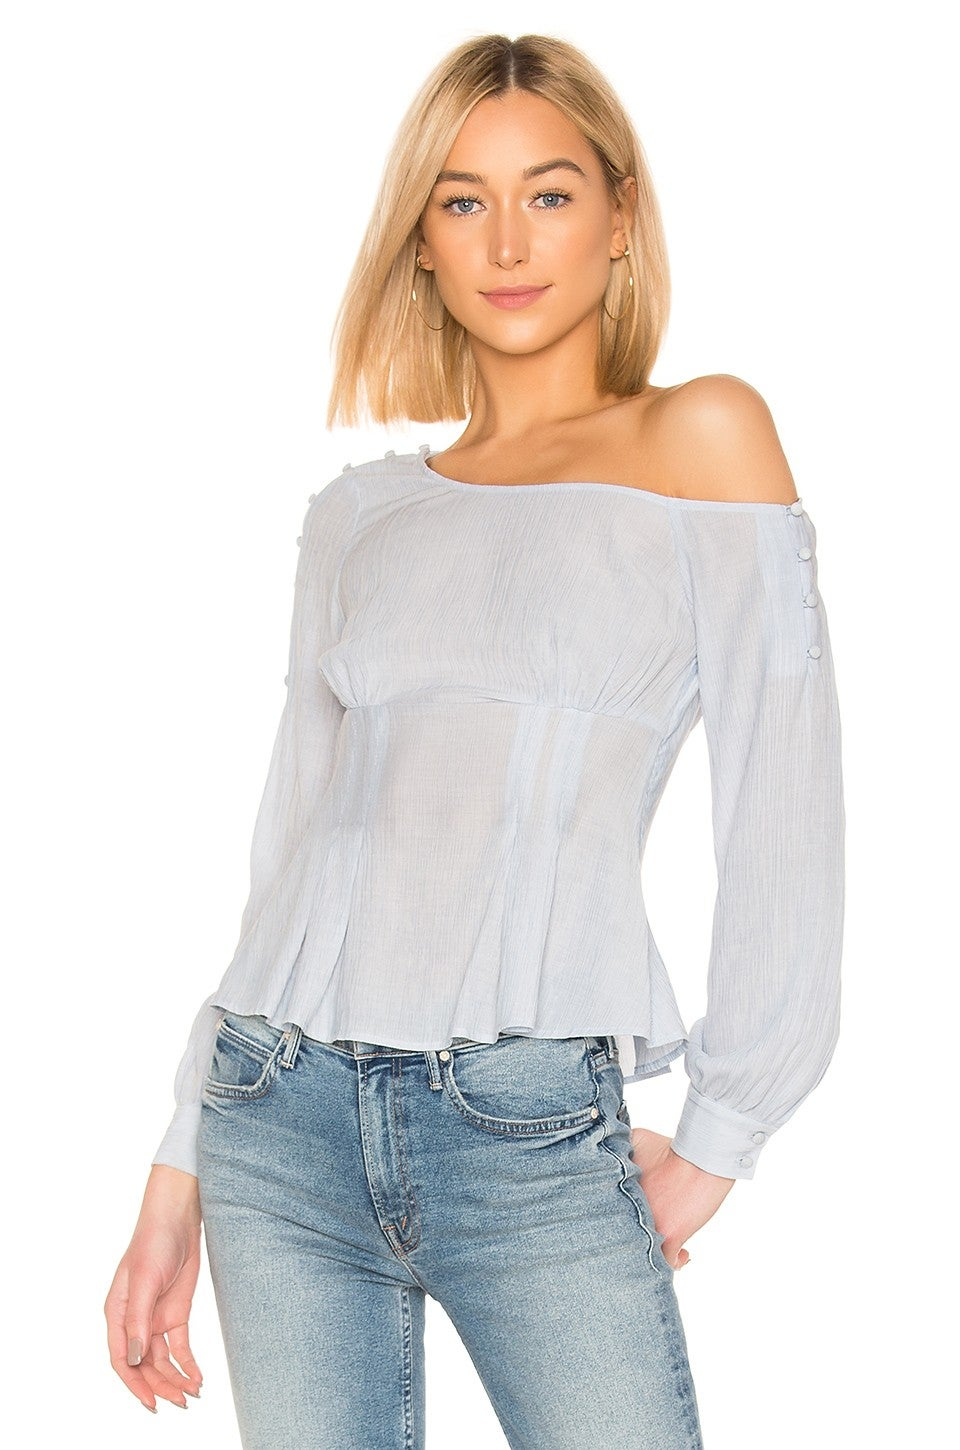 House of Harlow 1960 x Revolve asymmetric shoulder top